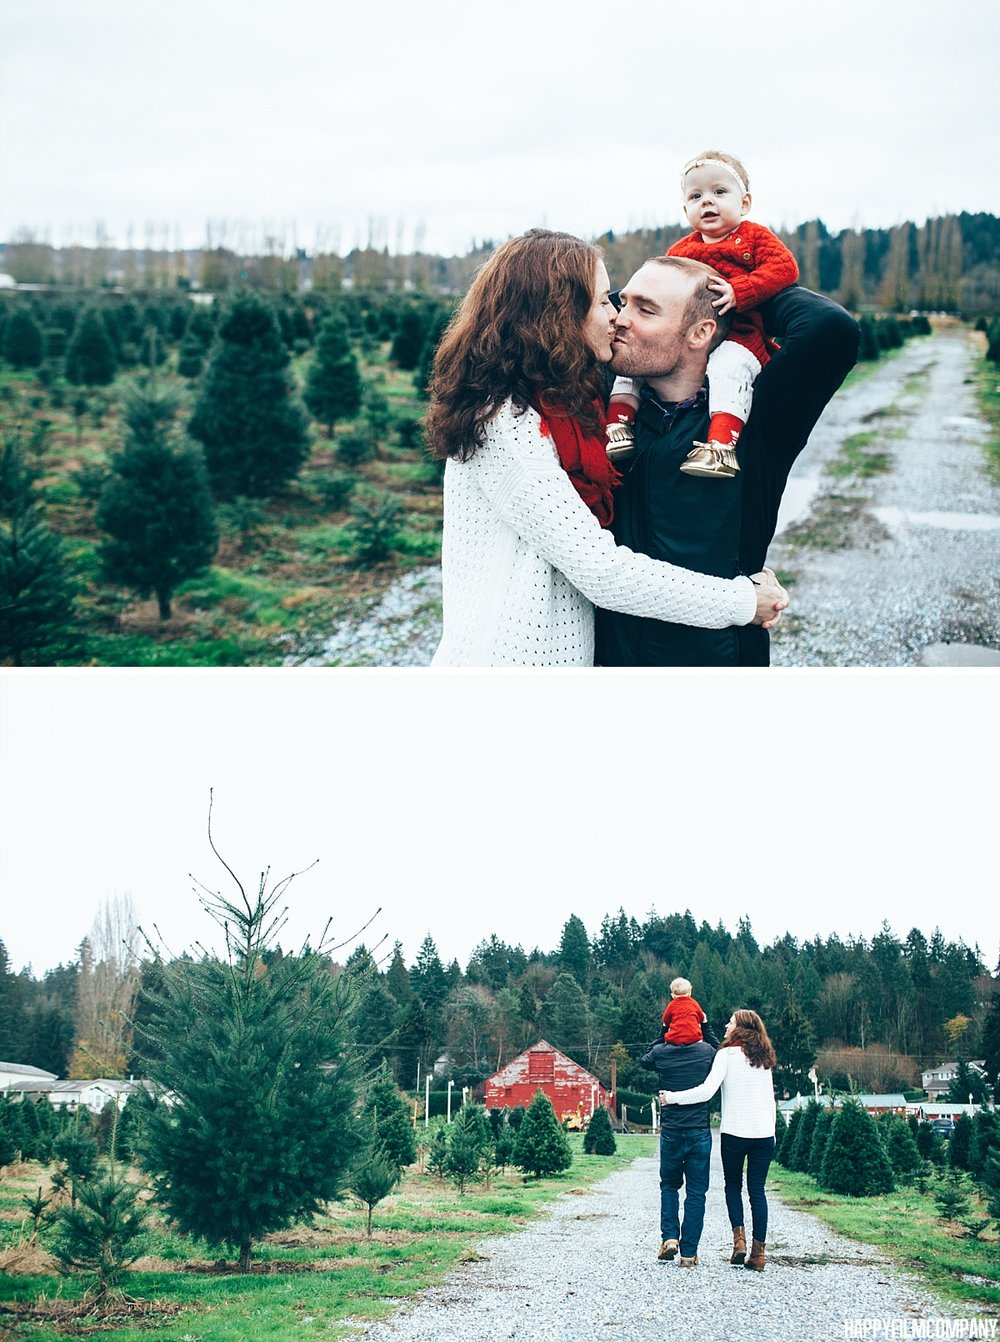 Dad carrying his daughter on his shoulder - Seattle Family Photos at the Christmas Tree Farm